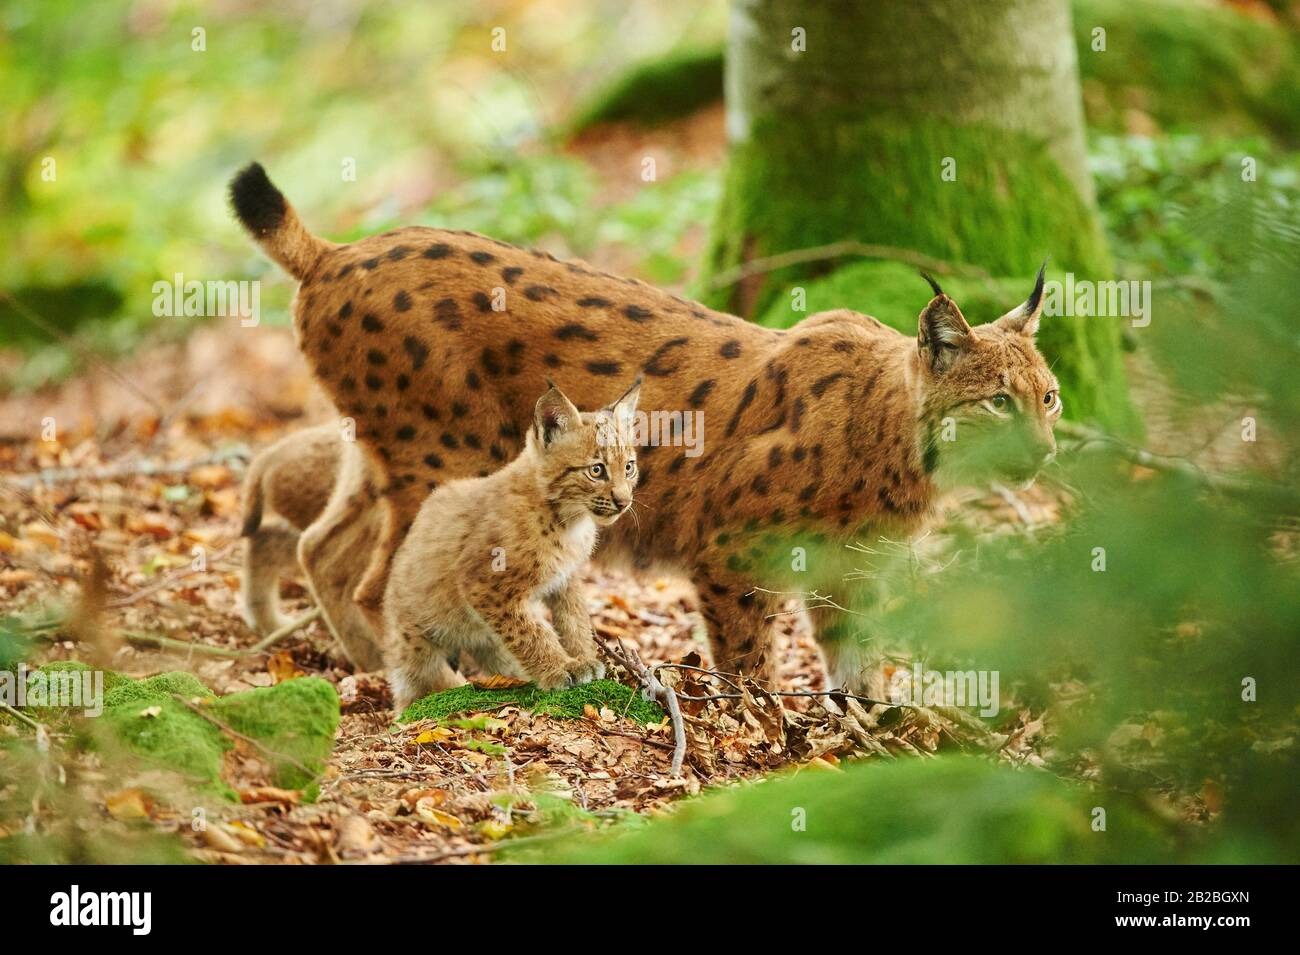 Eurasian lynx (Lynx lynx) mother animal with her youngster in a forest, captive, Bavarian Forest Nationalpark, Bavaria, Germany, Europe. Stock Photo